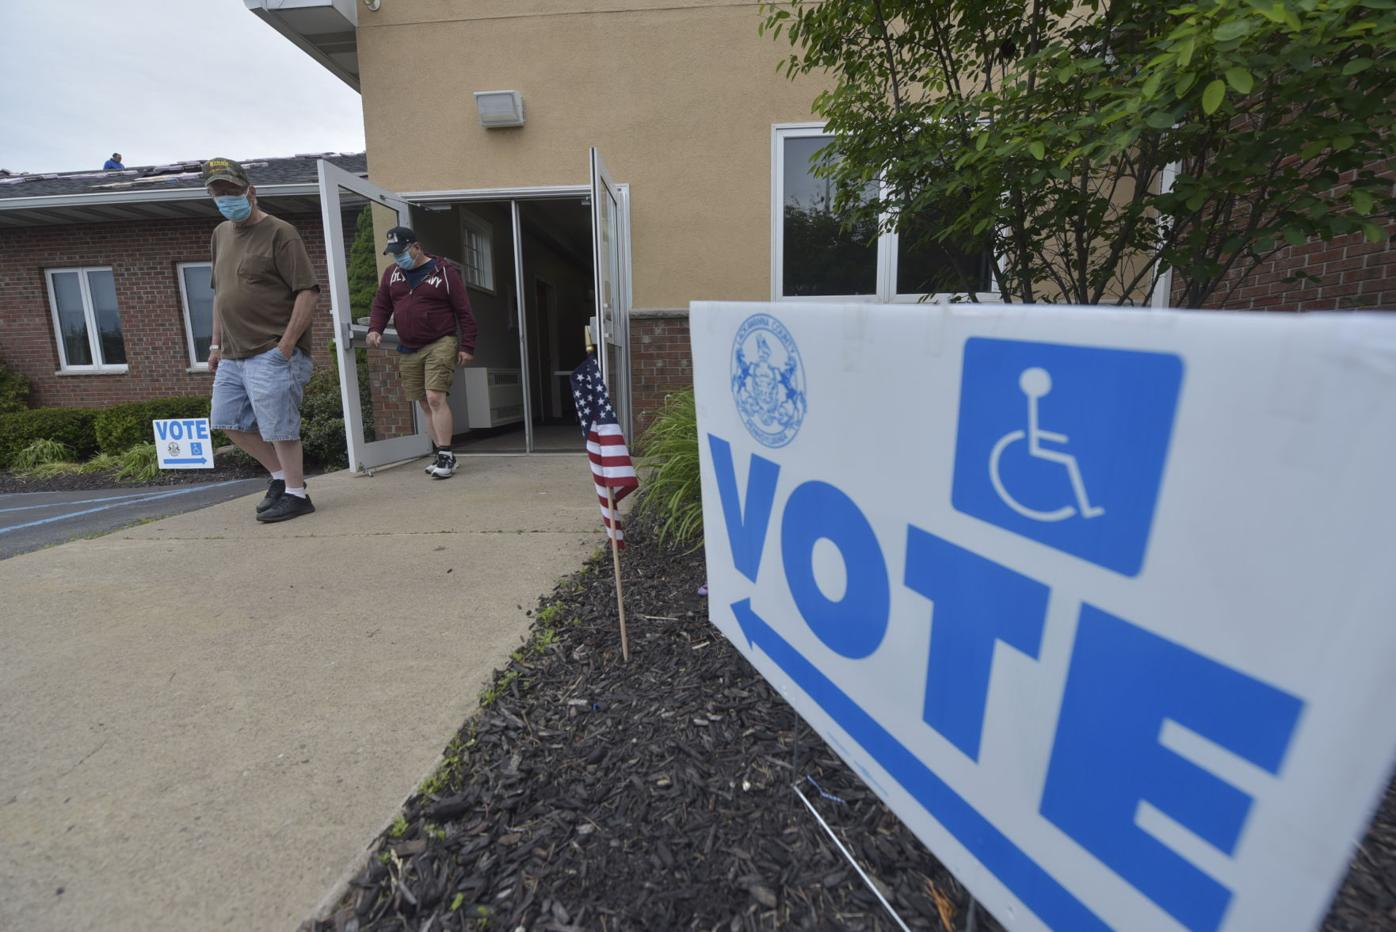 Polls are open, but turnout uncertain as voters cast primary ballots amid virus